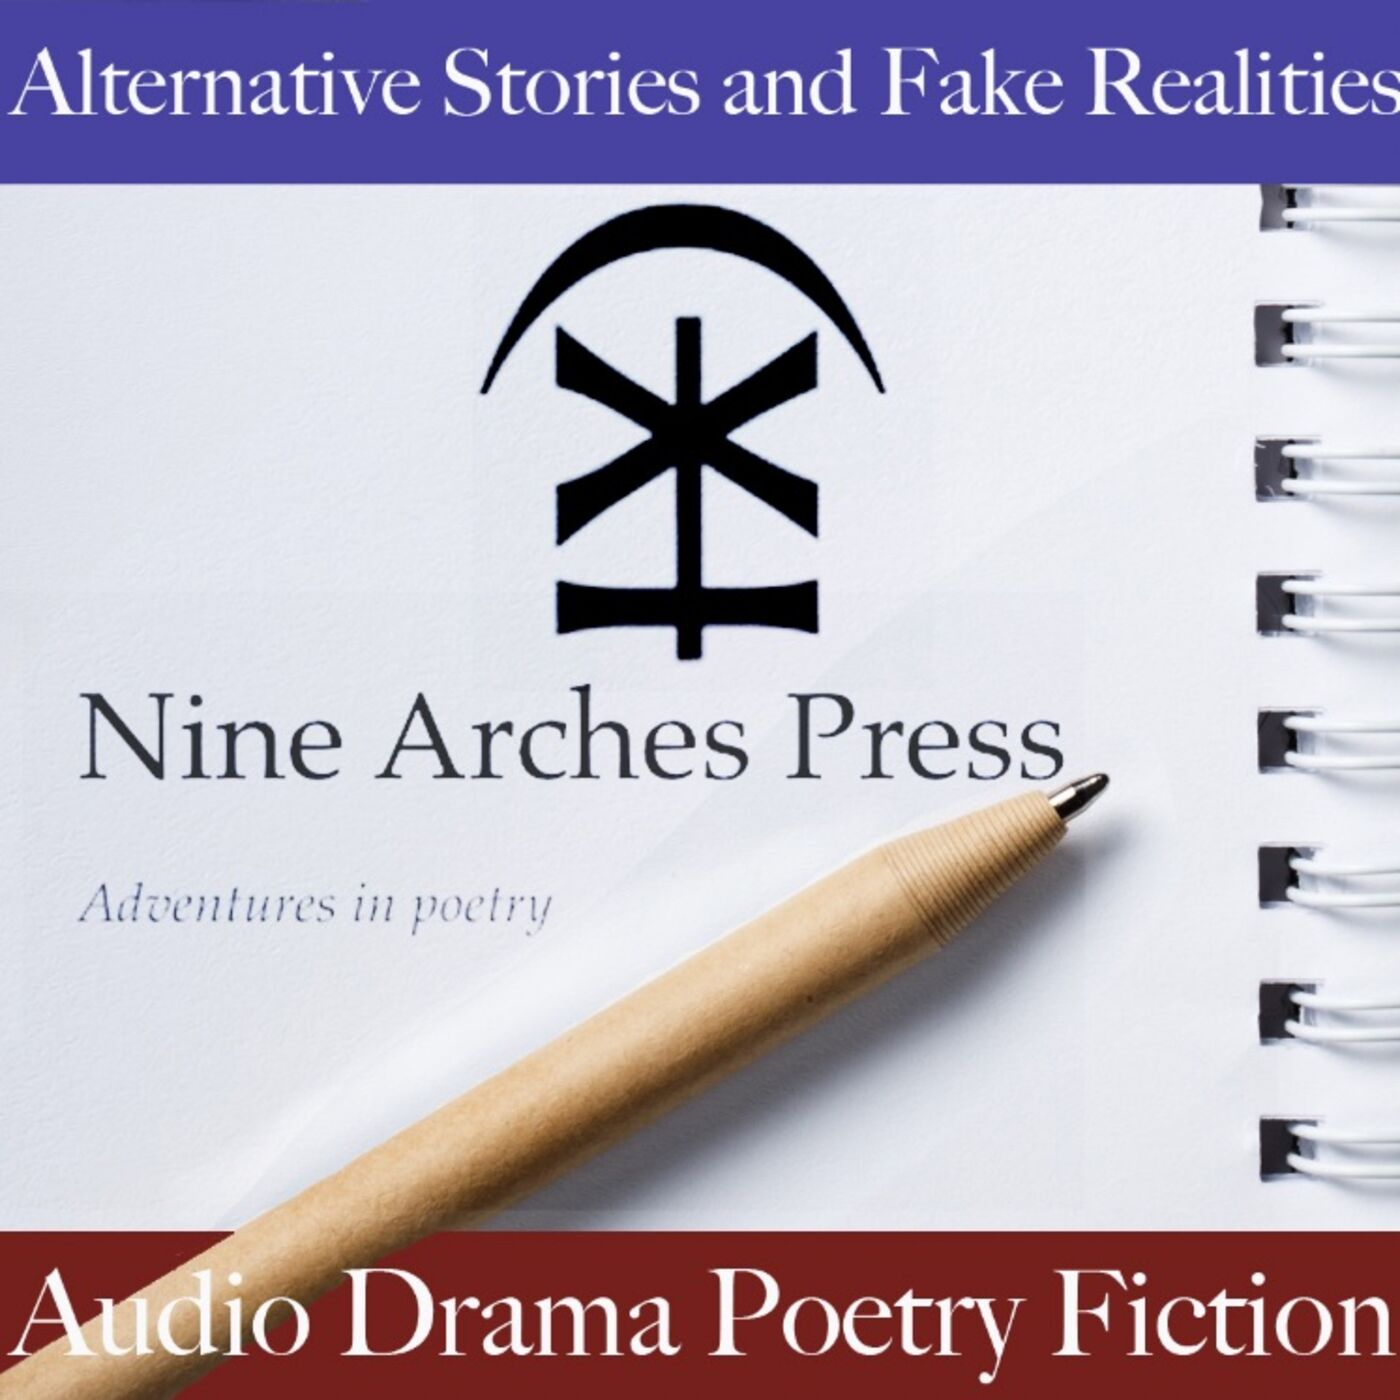 Poetry from Nine Arches Press